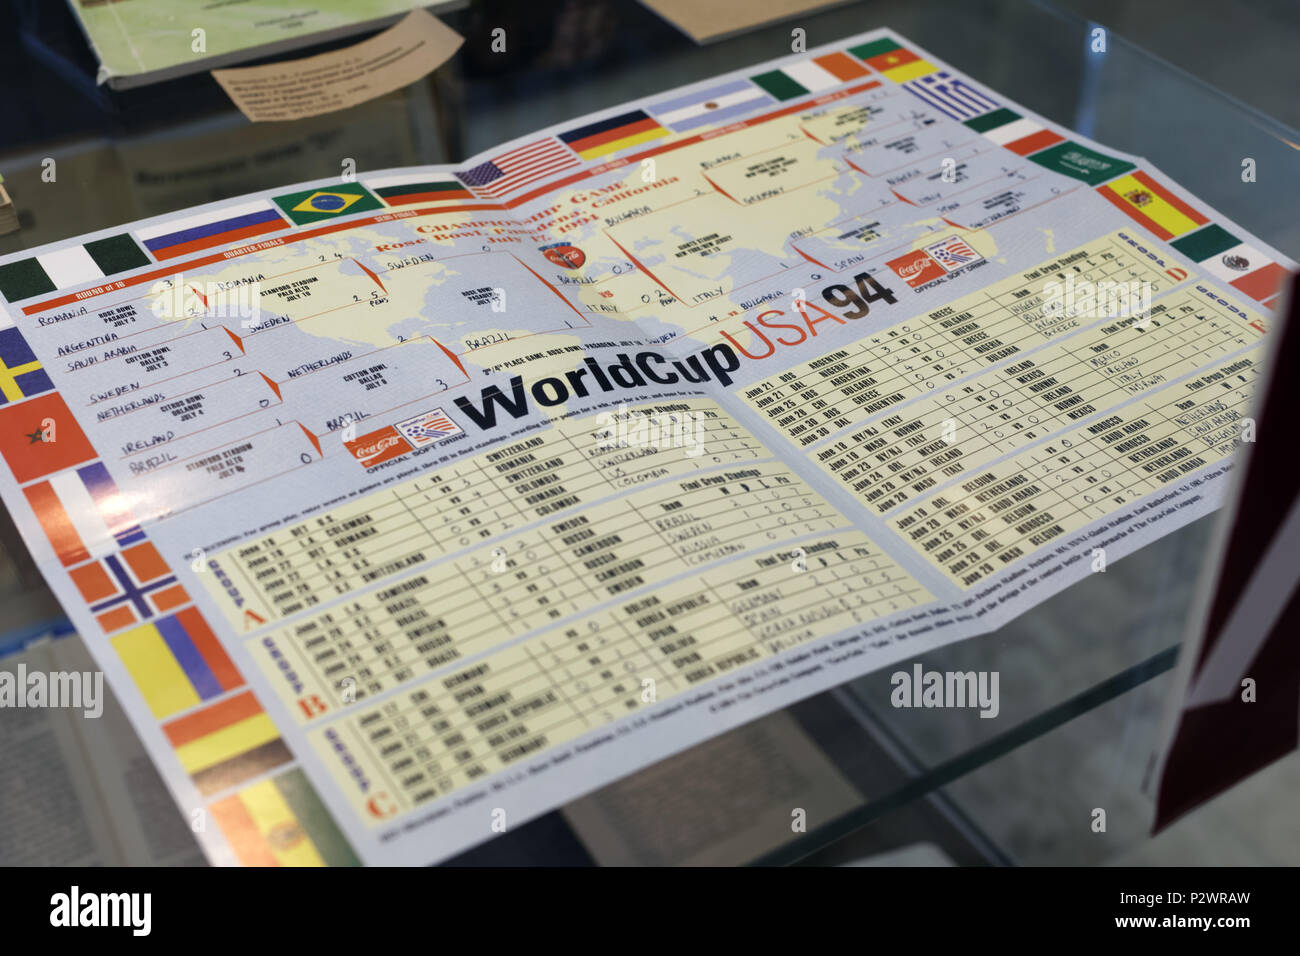 St. Petersburg, Russia - June 7, 2018: Schedule of FIFA World Cup USA 1994 in the exhibition 'Goal!!! FIFA World Cups history' in the National Library - Stock Image